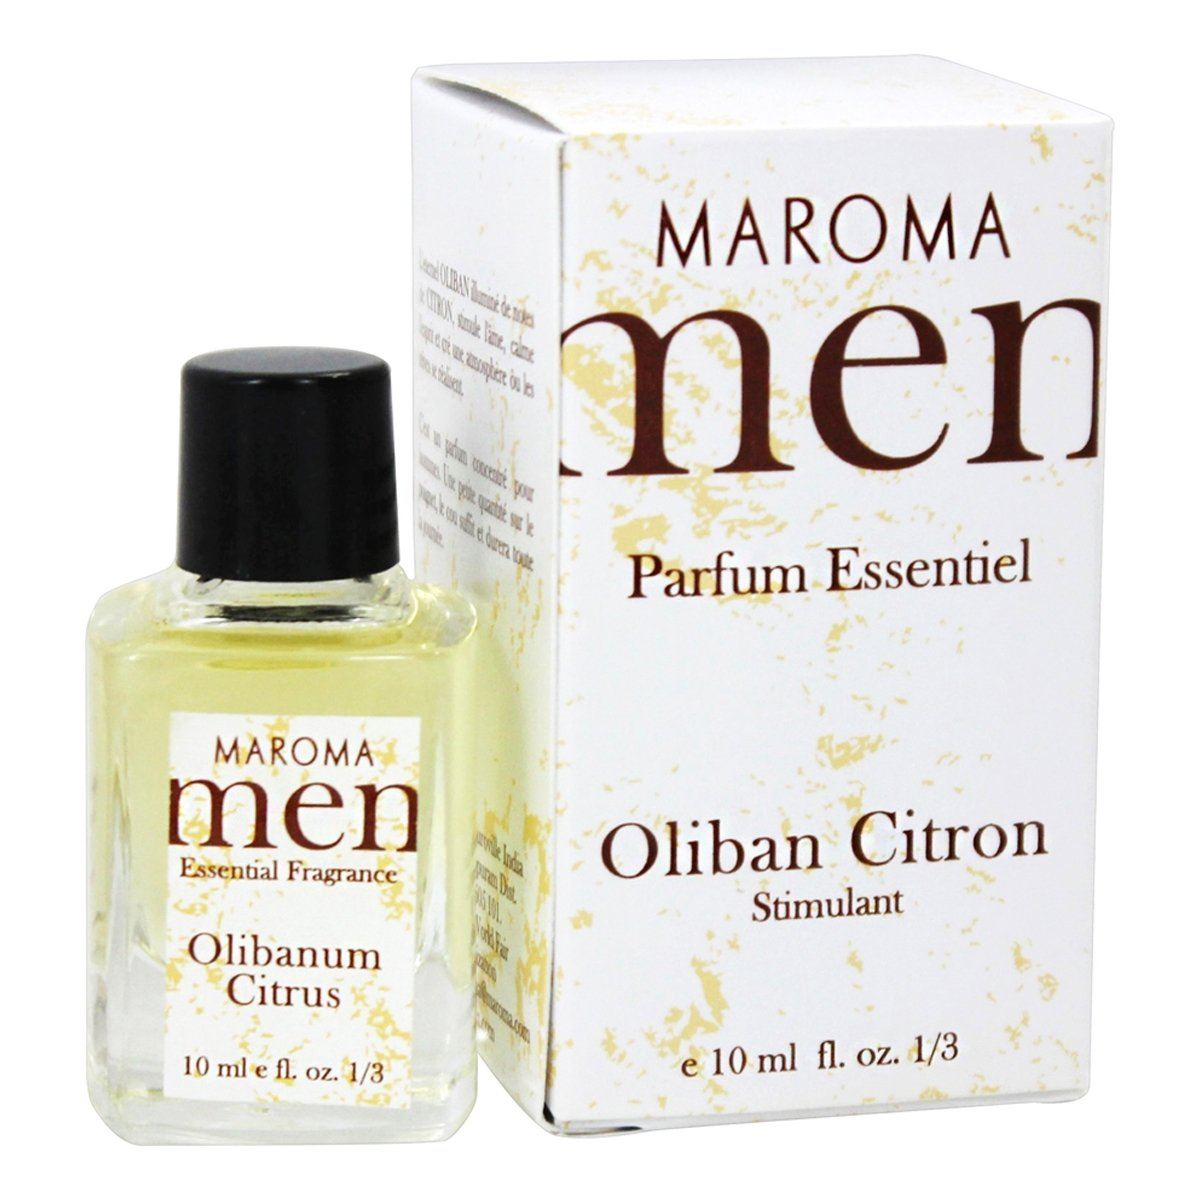 Personal Care - Maroma - Olibanum Citrus Fragrance, 10mL